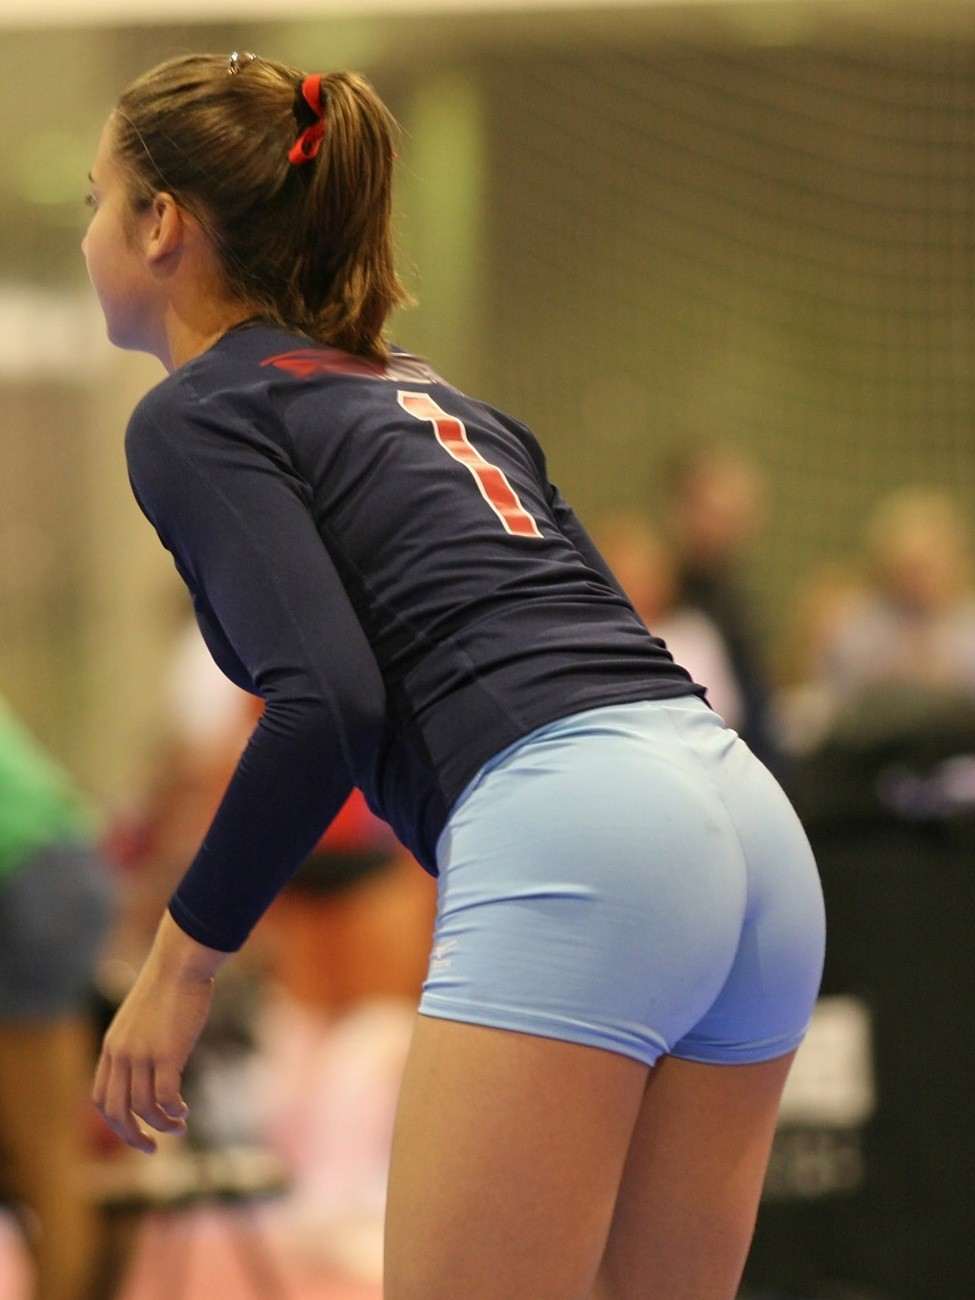 butts-in-shorts-pics